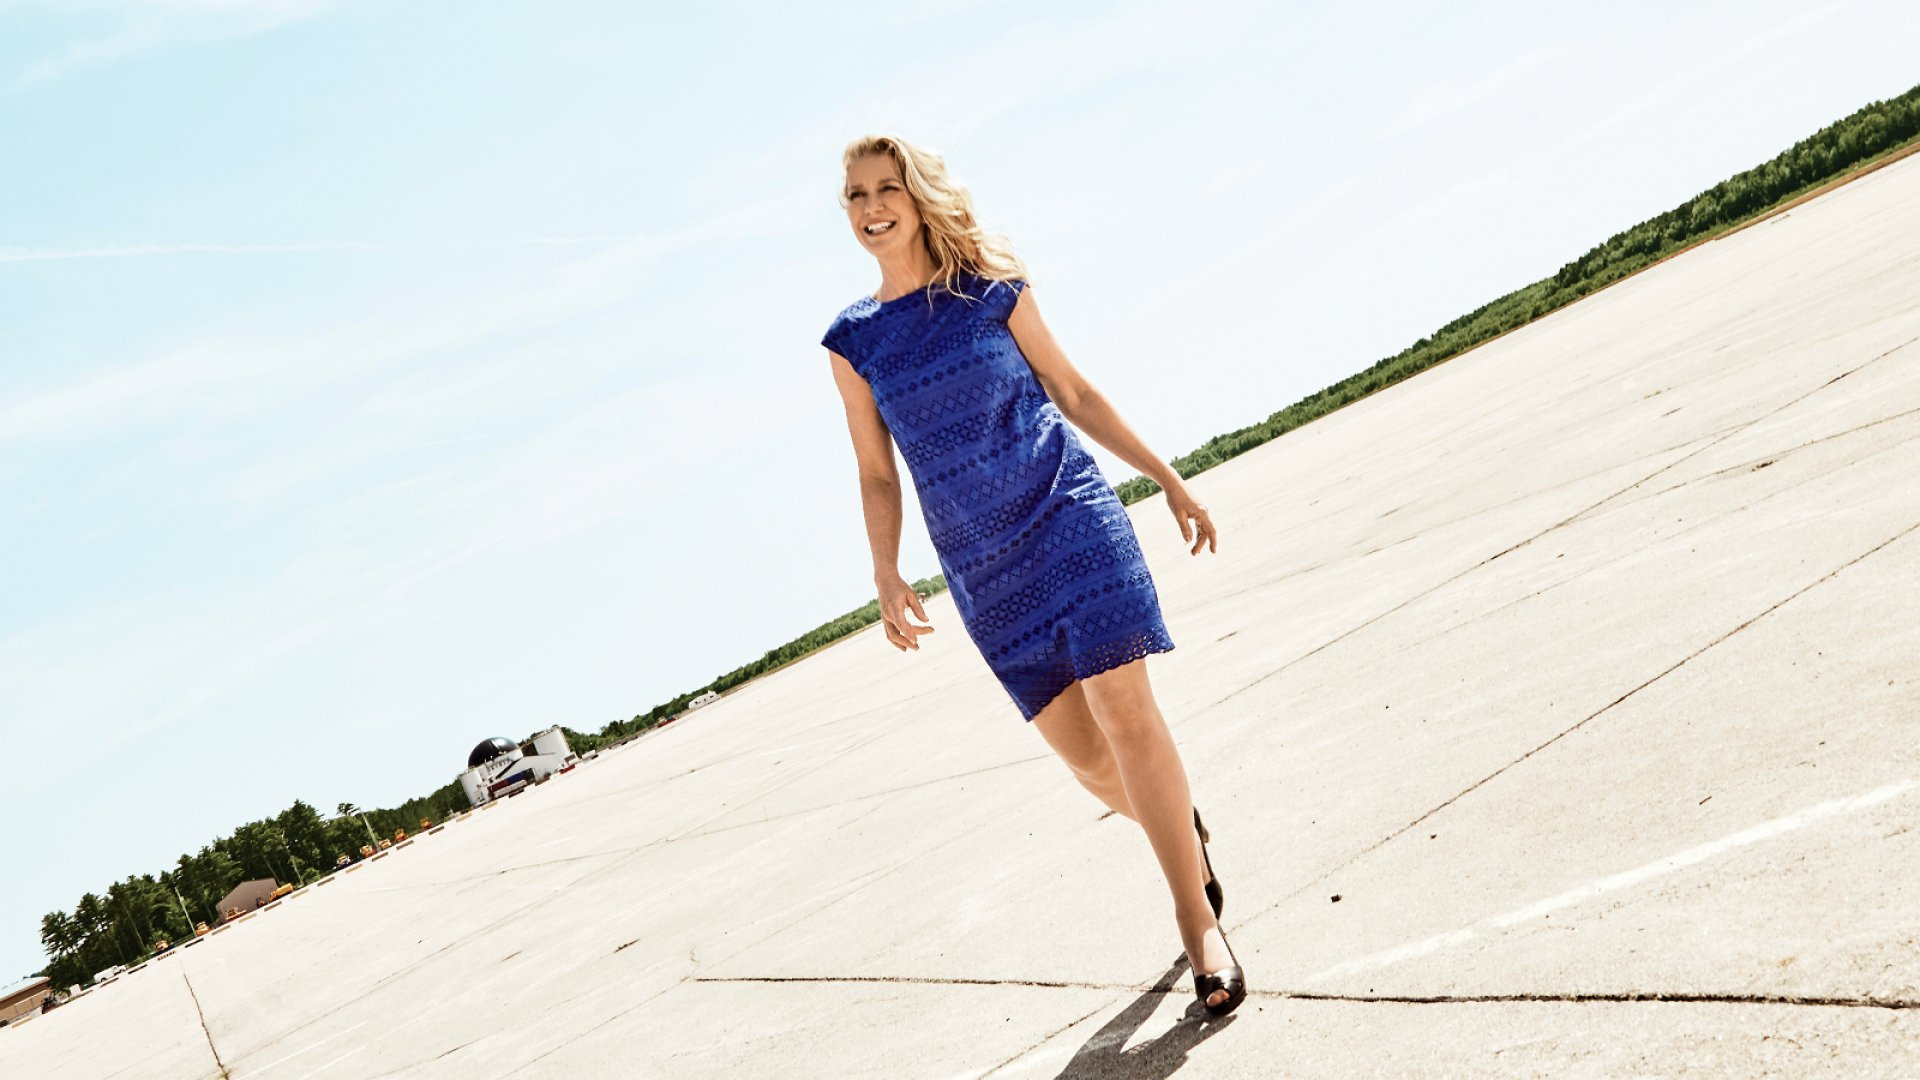 Heather Blease walking the runway at the decommissioned Brunswick Naval Air Station in Brunswick, Maine, which has been converted to a high-tech business and industrial park and includes the Savilinx offices.